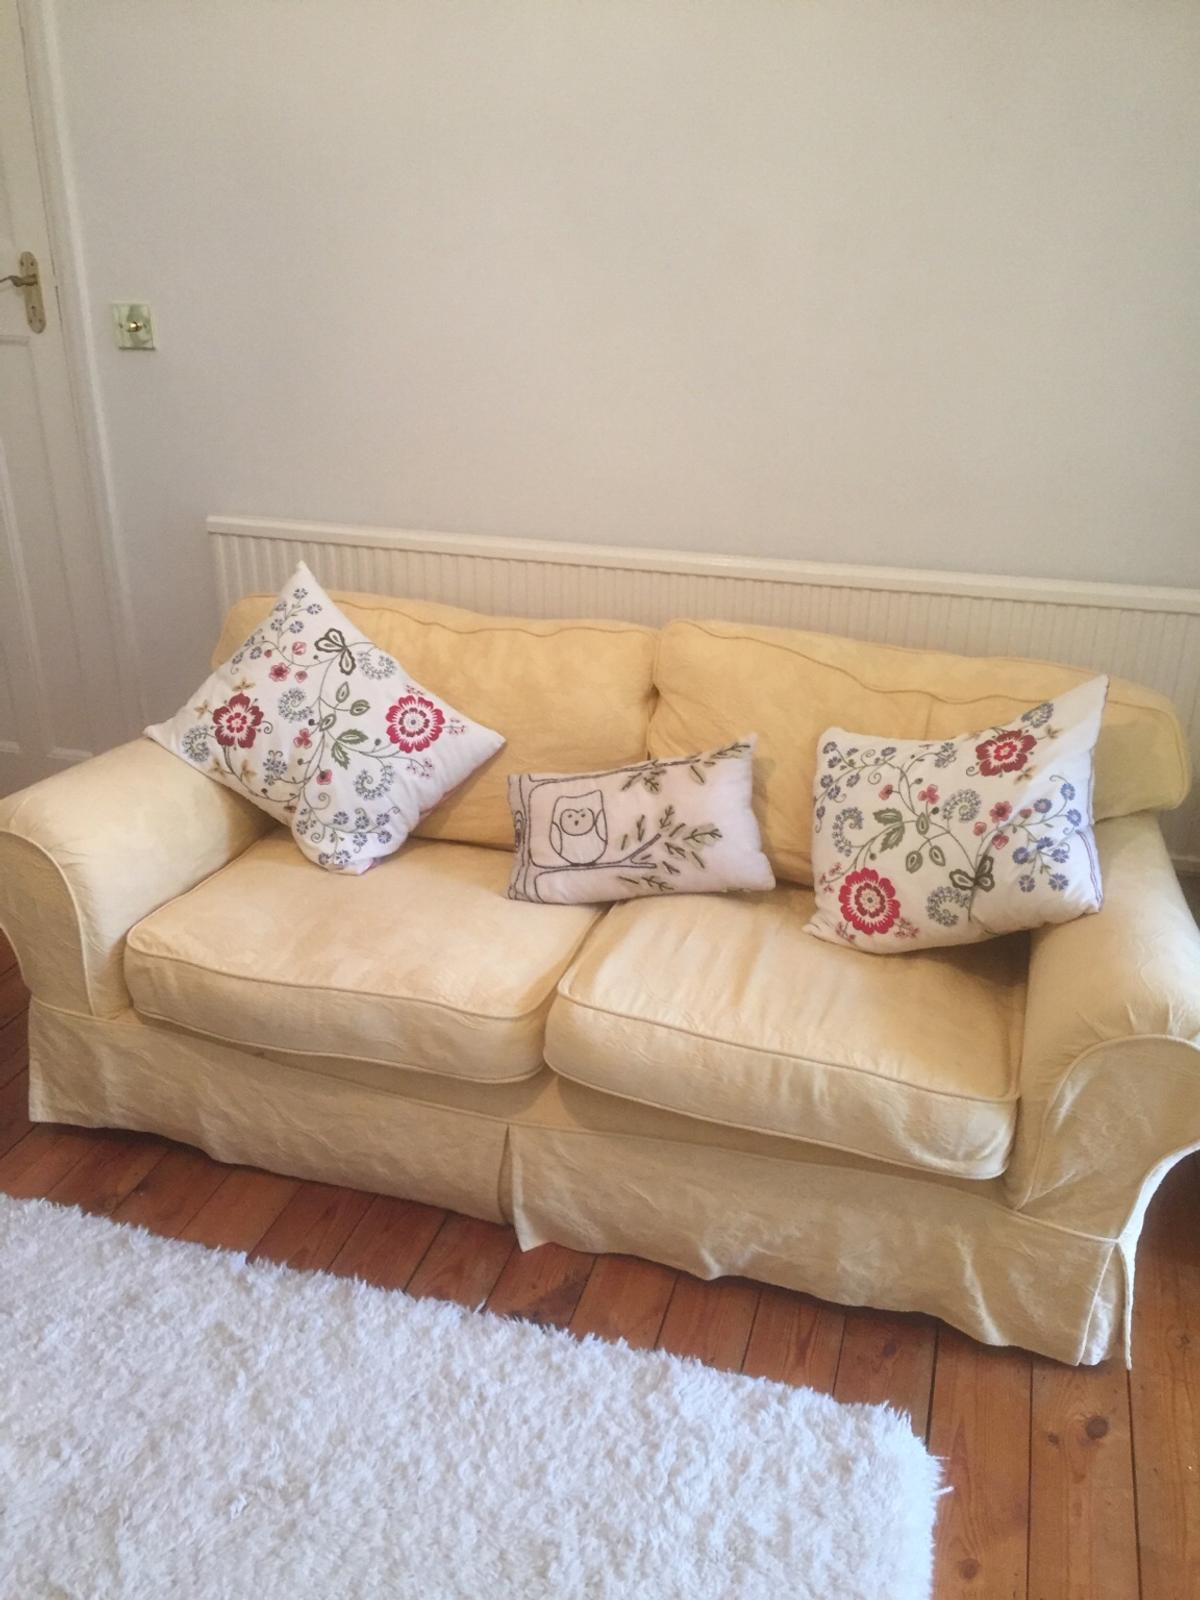 Wondrous Sofa 3 Seat And Chair Made By Kirkdale In Cr5 London For Onthecornerstone Fun Painted Chair Ideas Images Onthecornerstoneorg